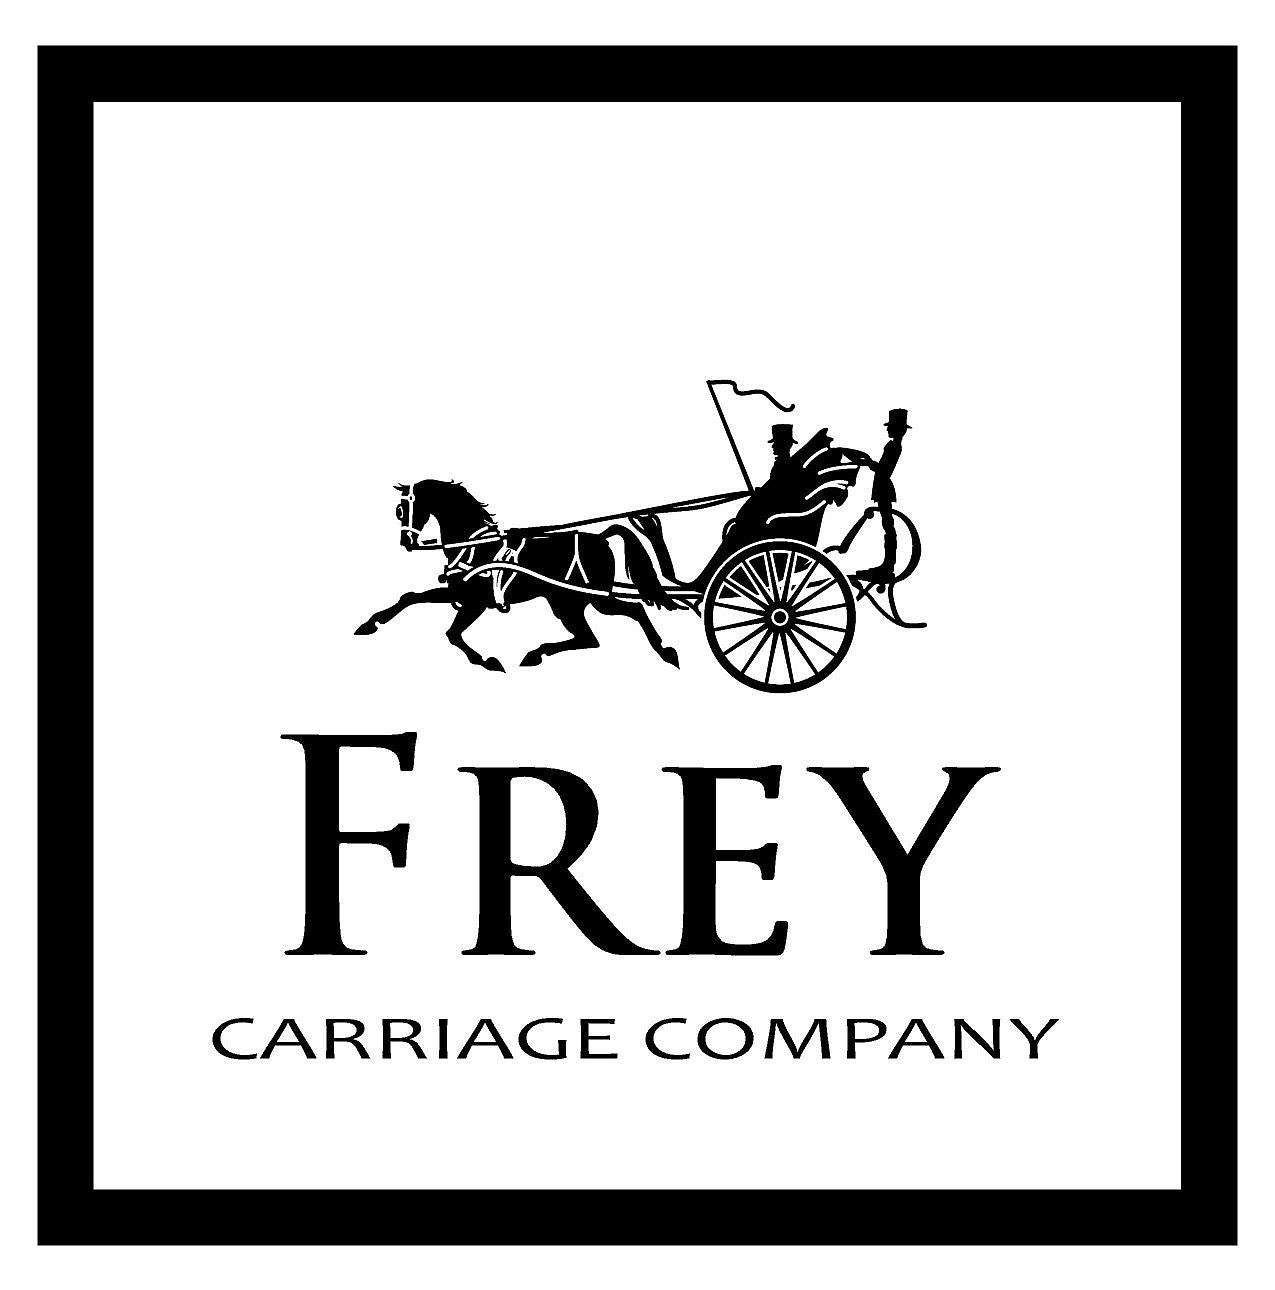 Frey Carriage Company